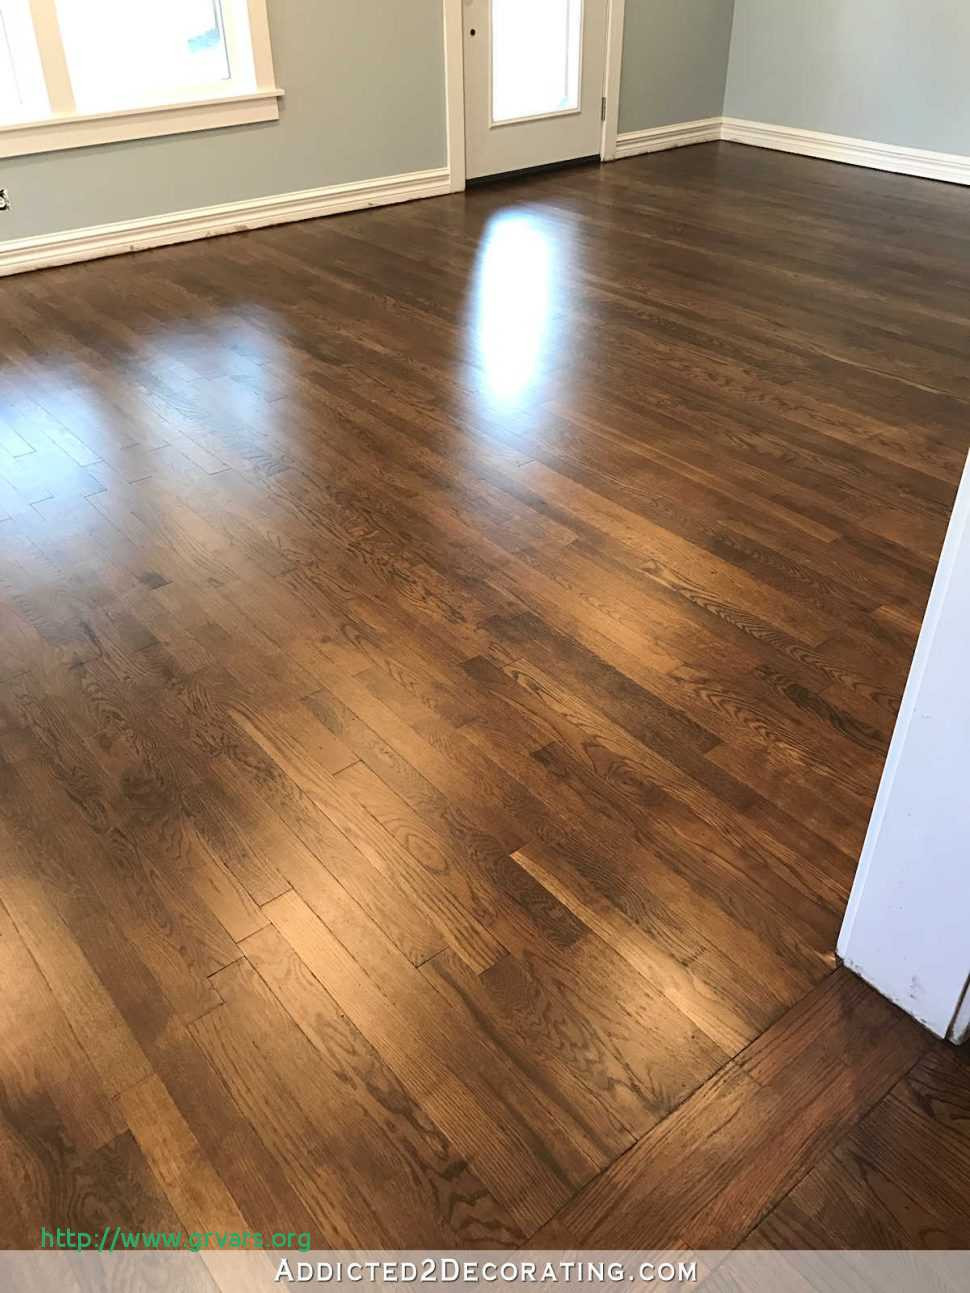 cost to refinish hardwood floors nyc of 21 nouveau how much does it cost to have hardwood floors refinished intended for how much does it cost to have hardwood floors refinished nouveau refinishing hardwood floors without sanding